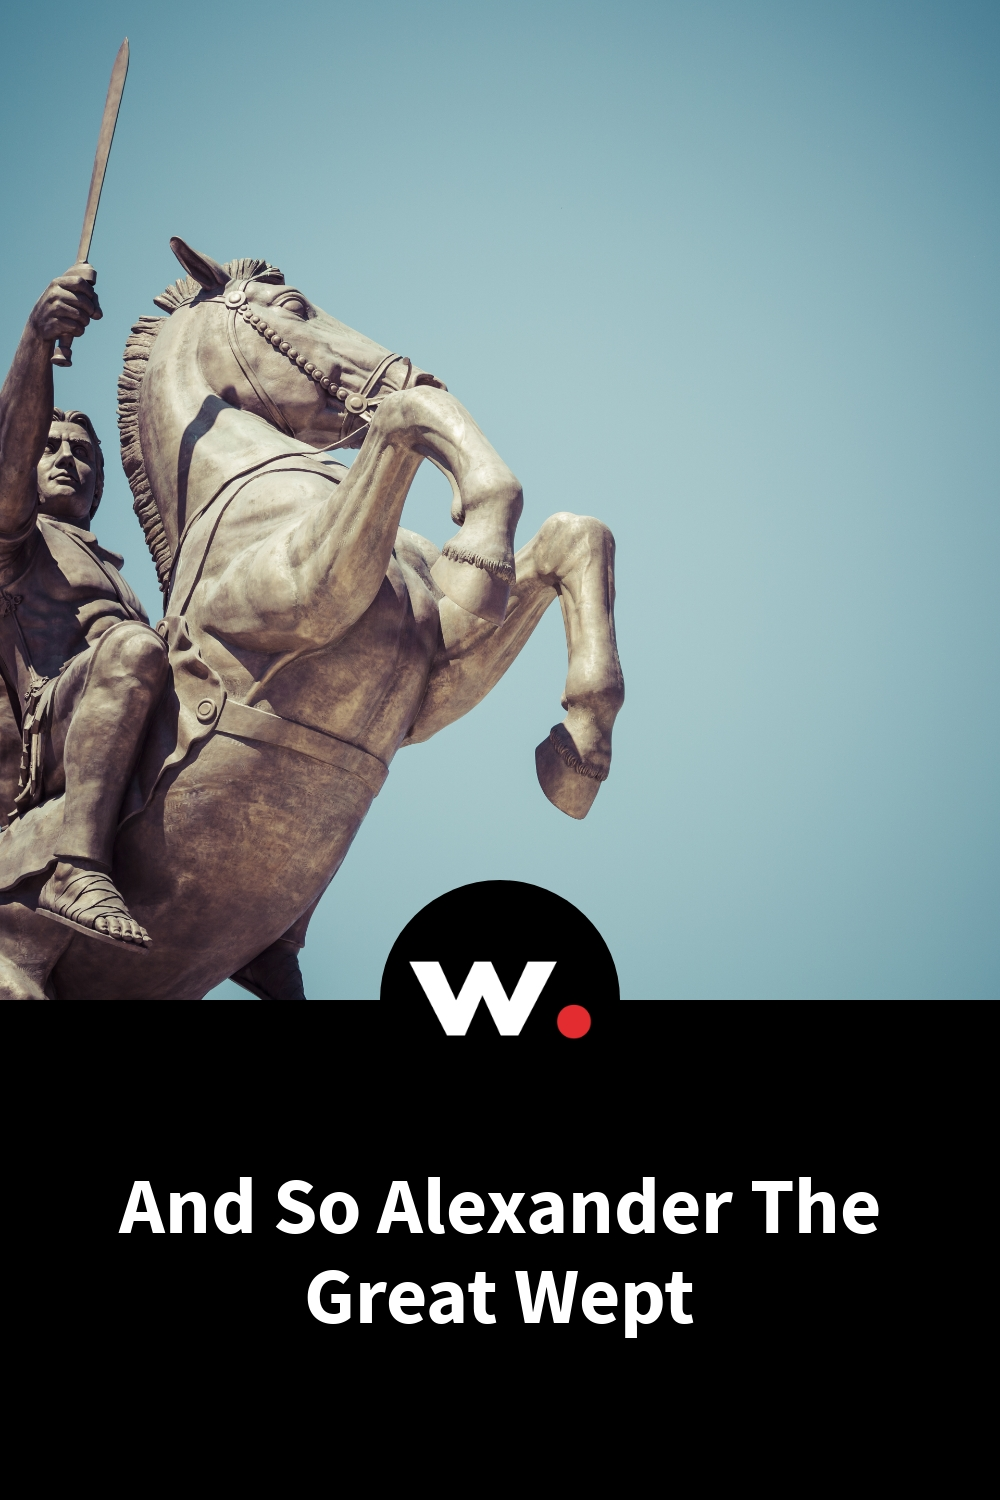 And So Alexander The Great Wept